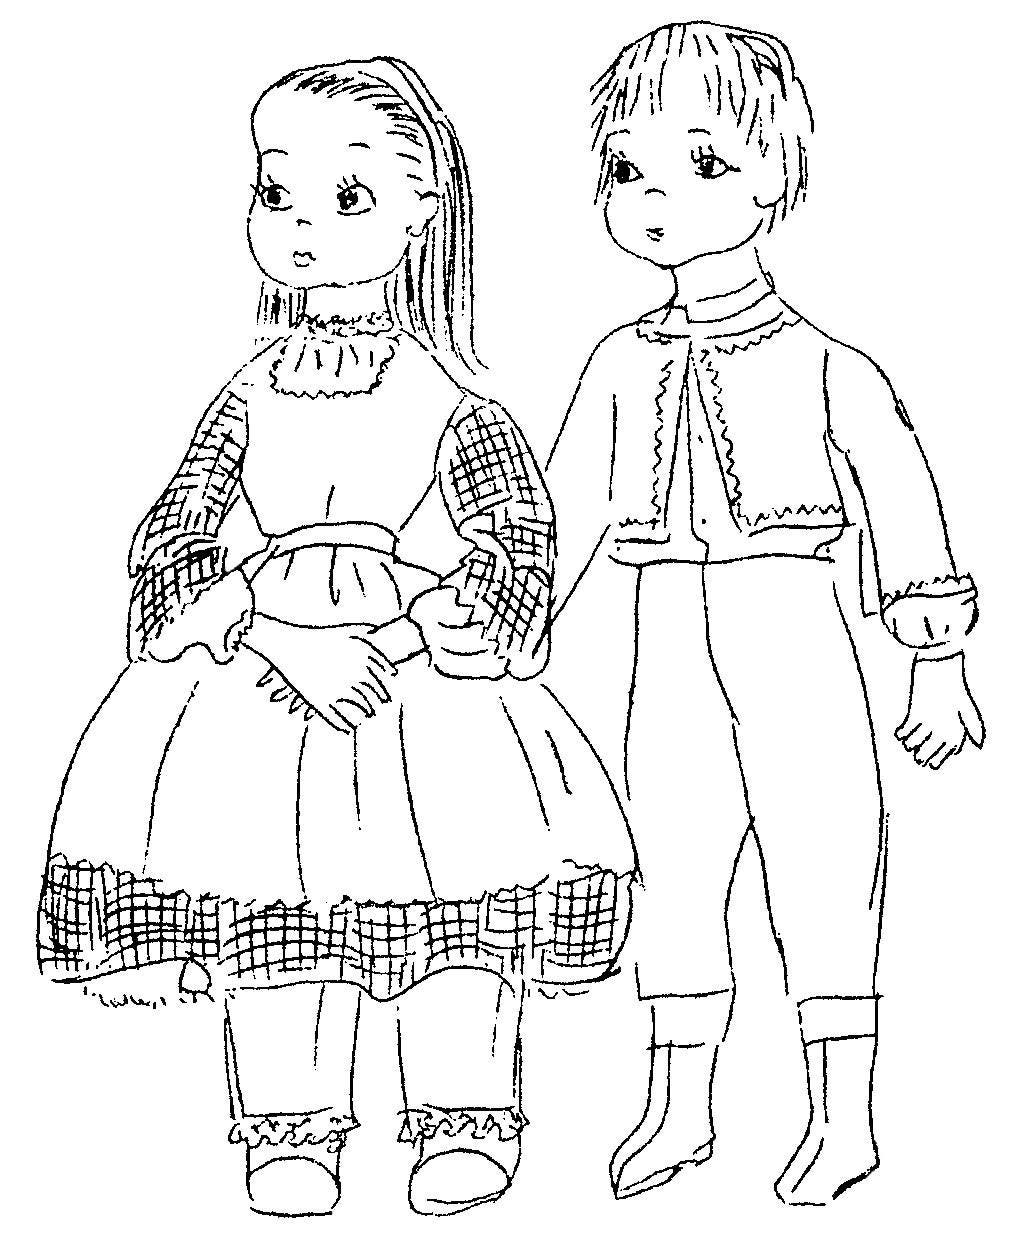 tom sawyer and becky cloth doll pattern doll clothes pattern etsy 1960s Work Clothes 50